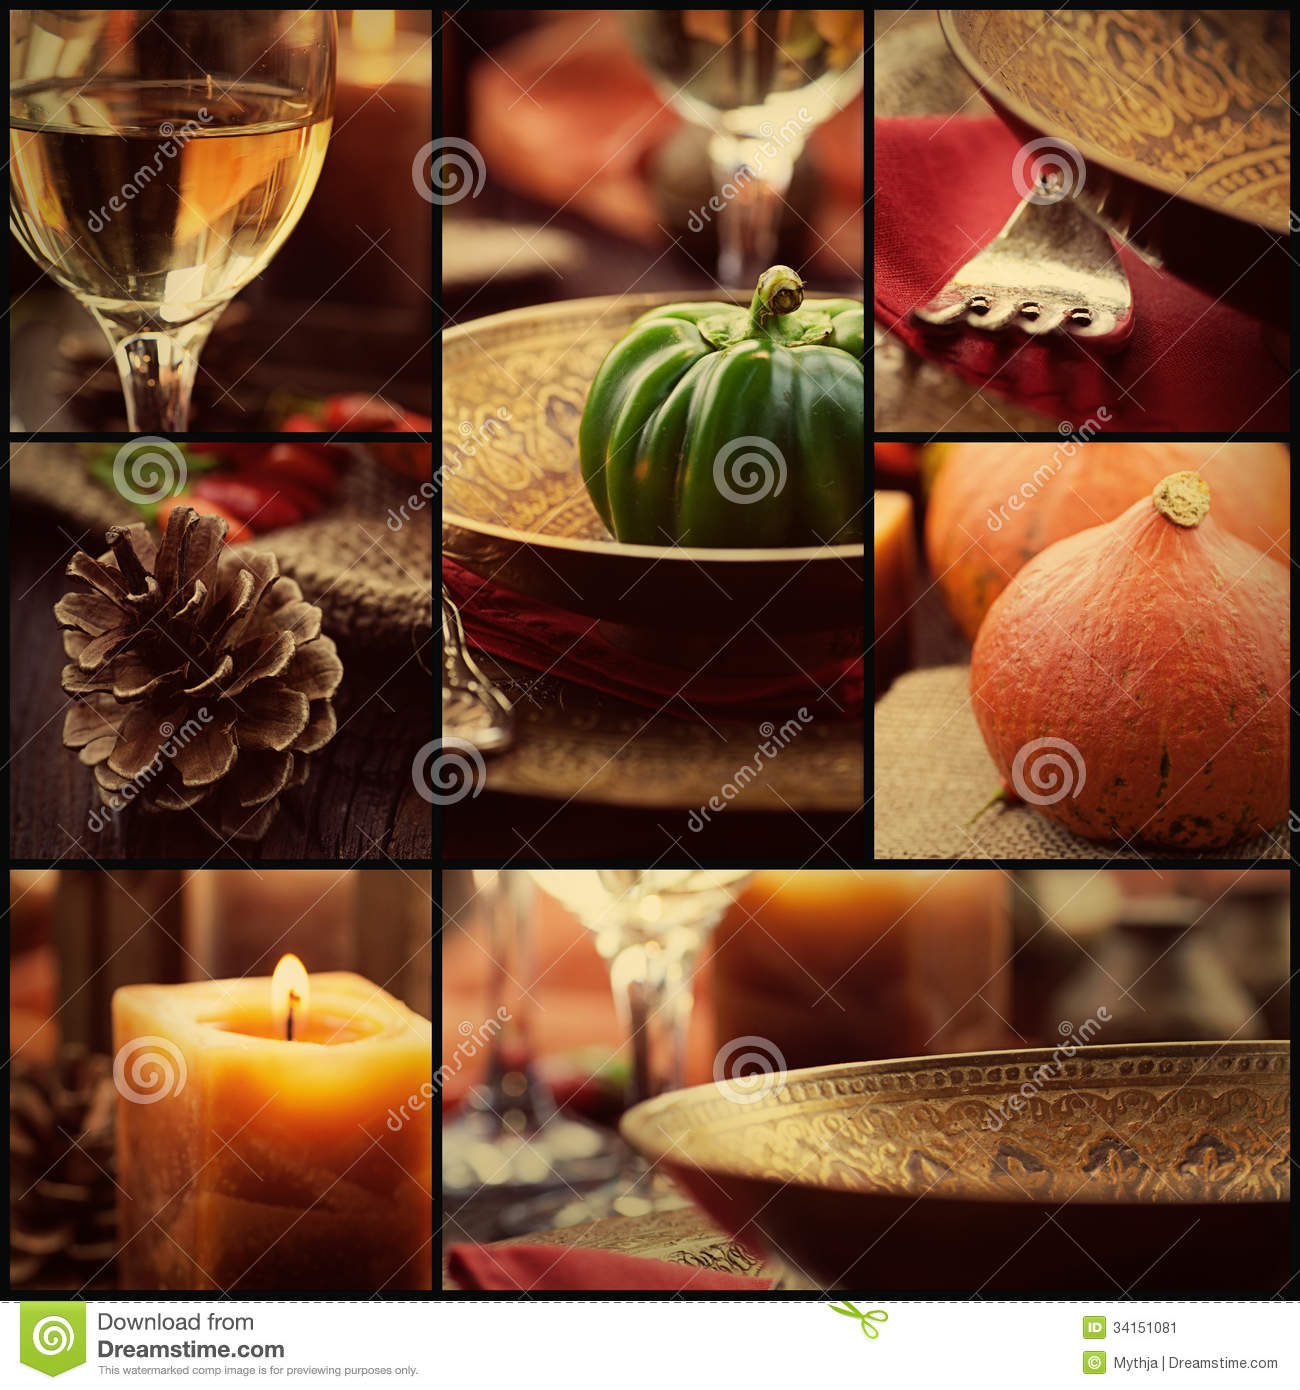 Fall Candles Wallpaper Autumn Dinner Collage Stock Image Image Of Gold Cutlery